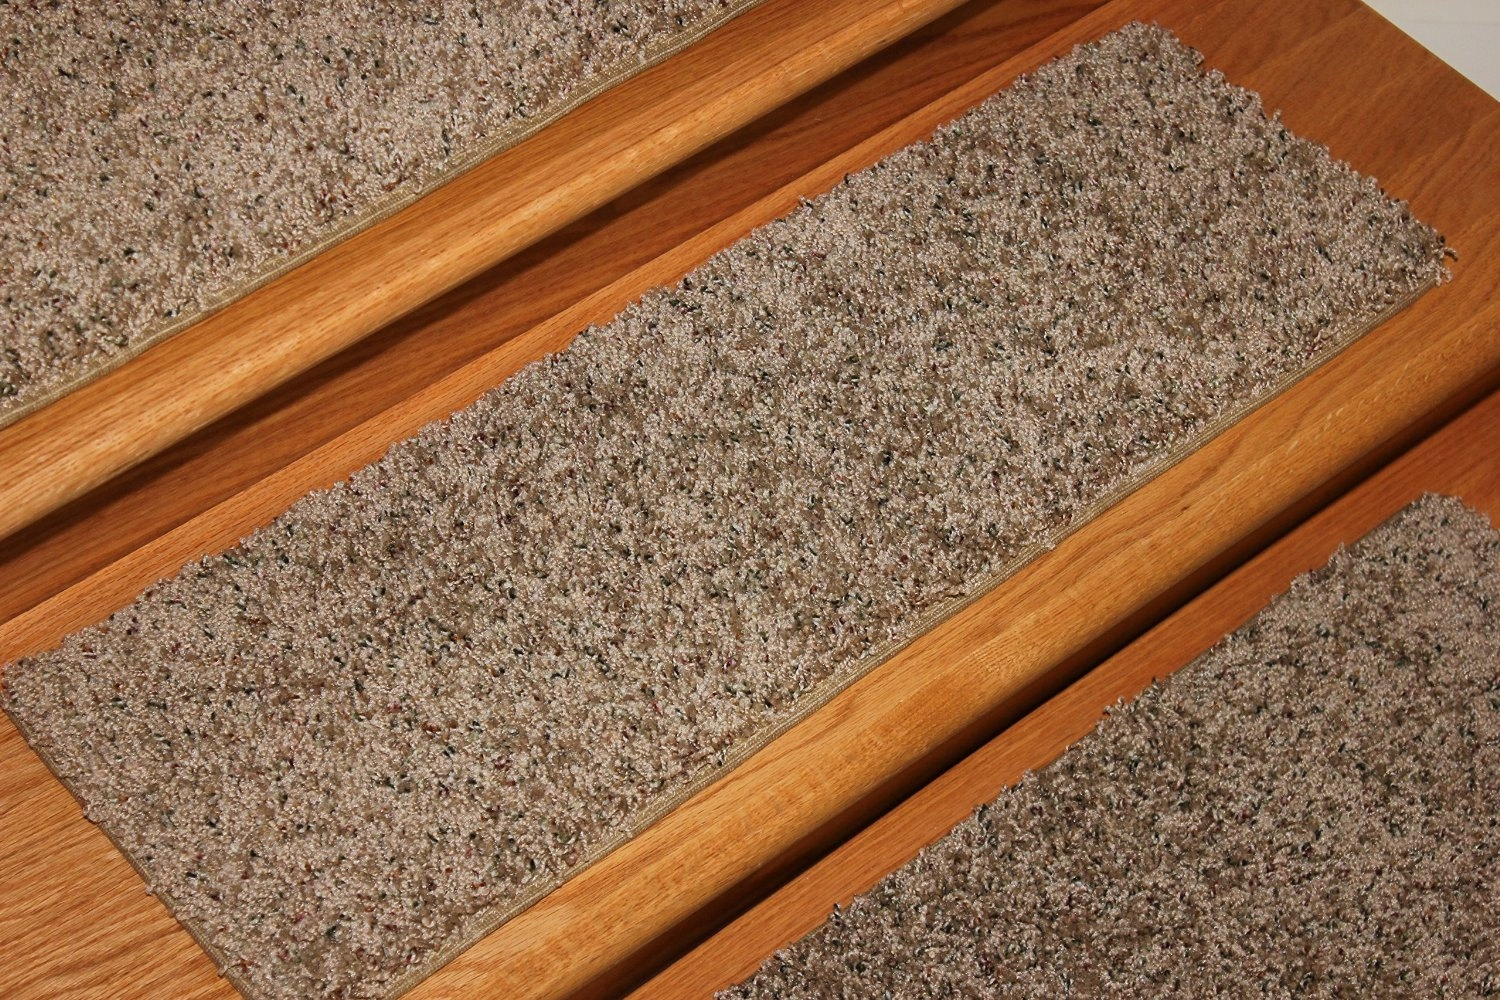 8×24 Dog Assist Carpet Stair Treads Painted Tan Intended For Stair Tread Rugs For Dogs (Image 2 of 15)